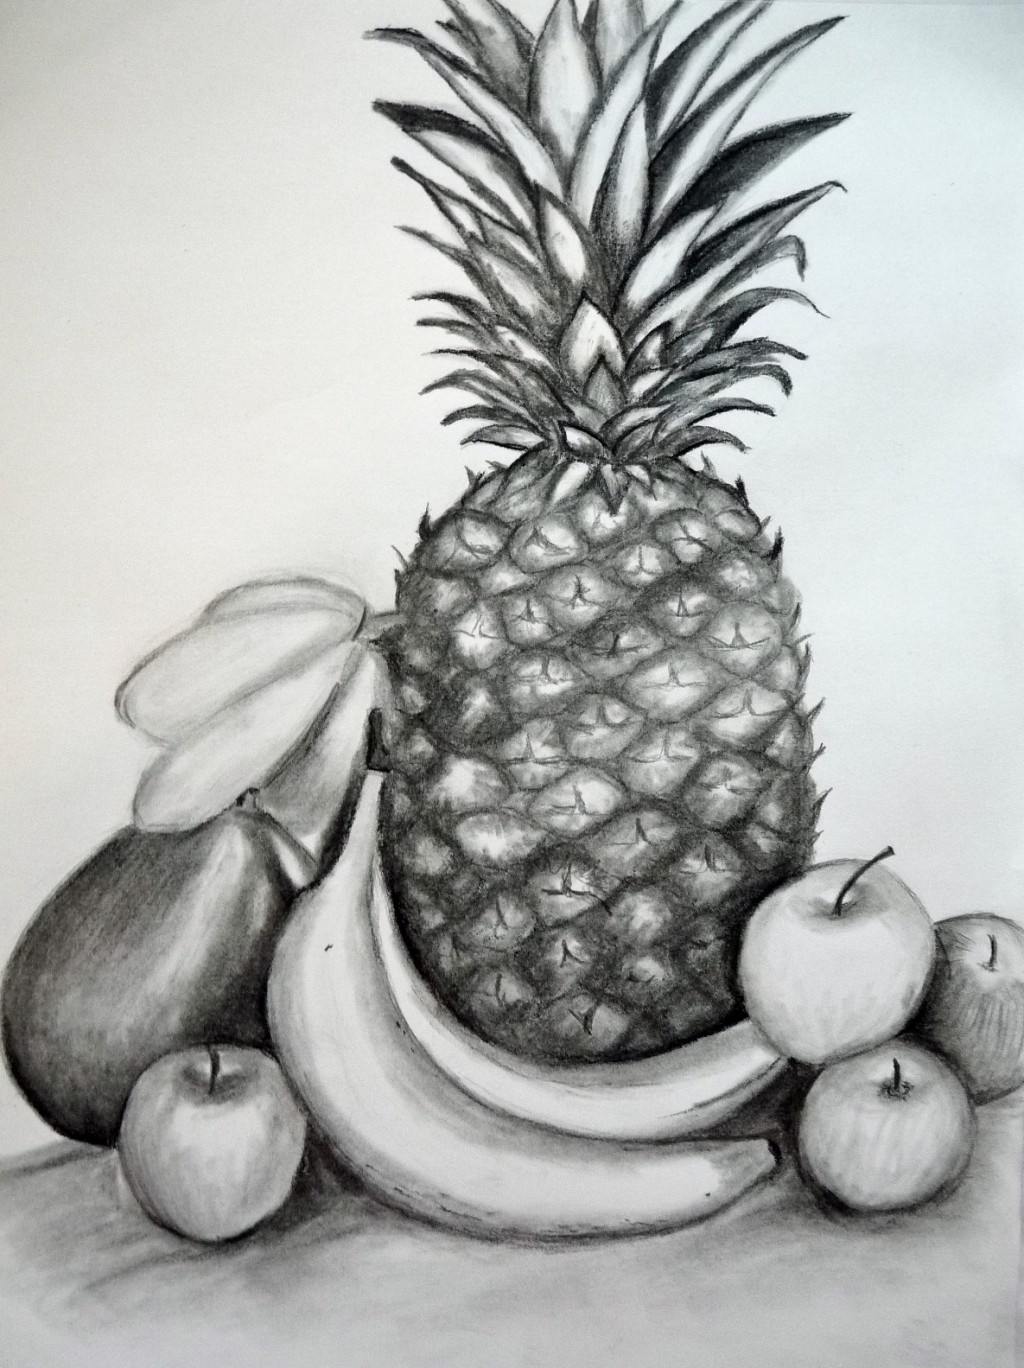 Drawn river elementary drawing exam nature Composition How to Still Life